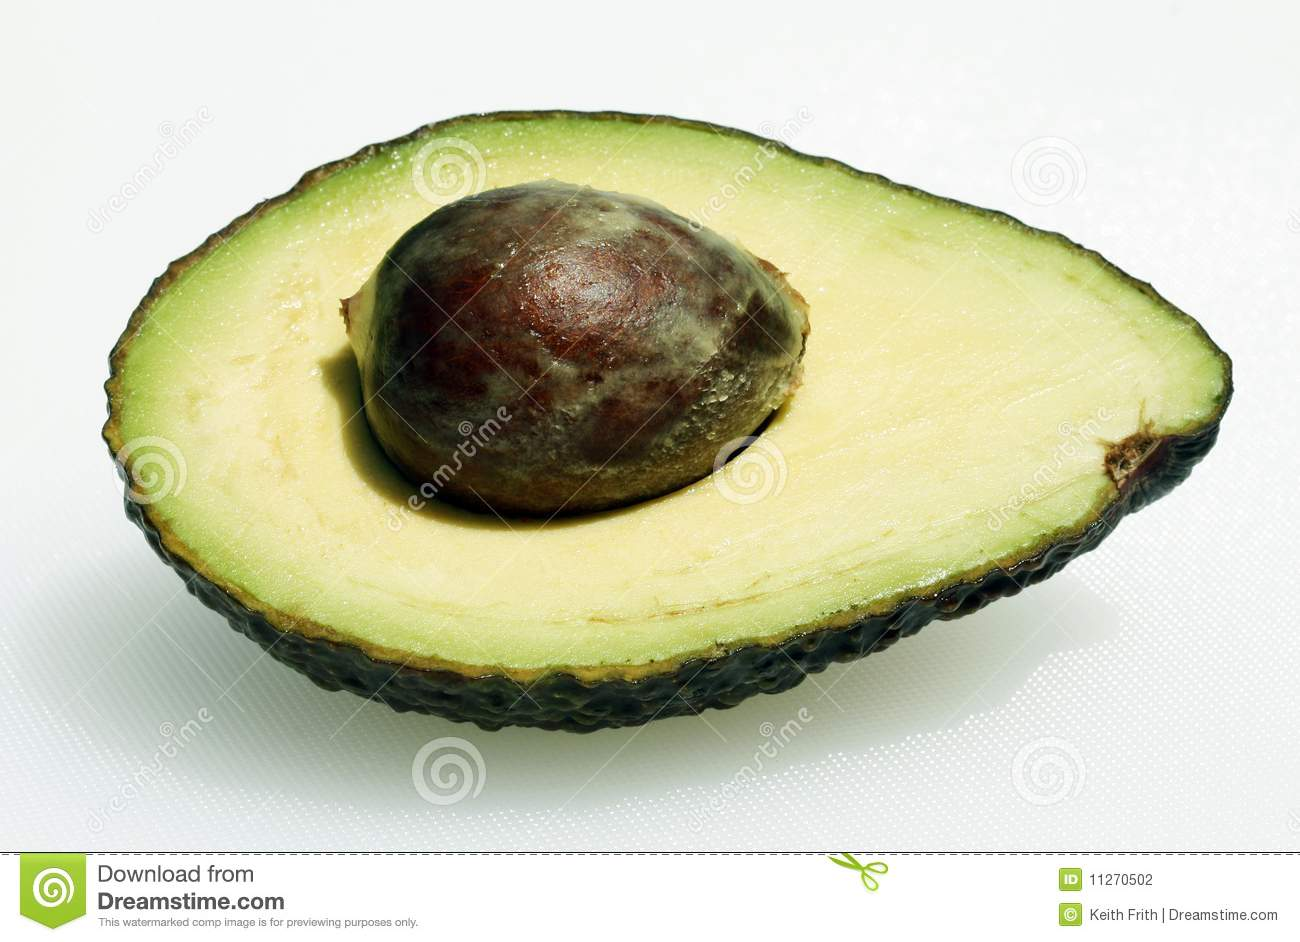 Natures butter Avocado